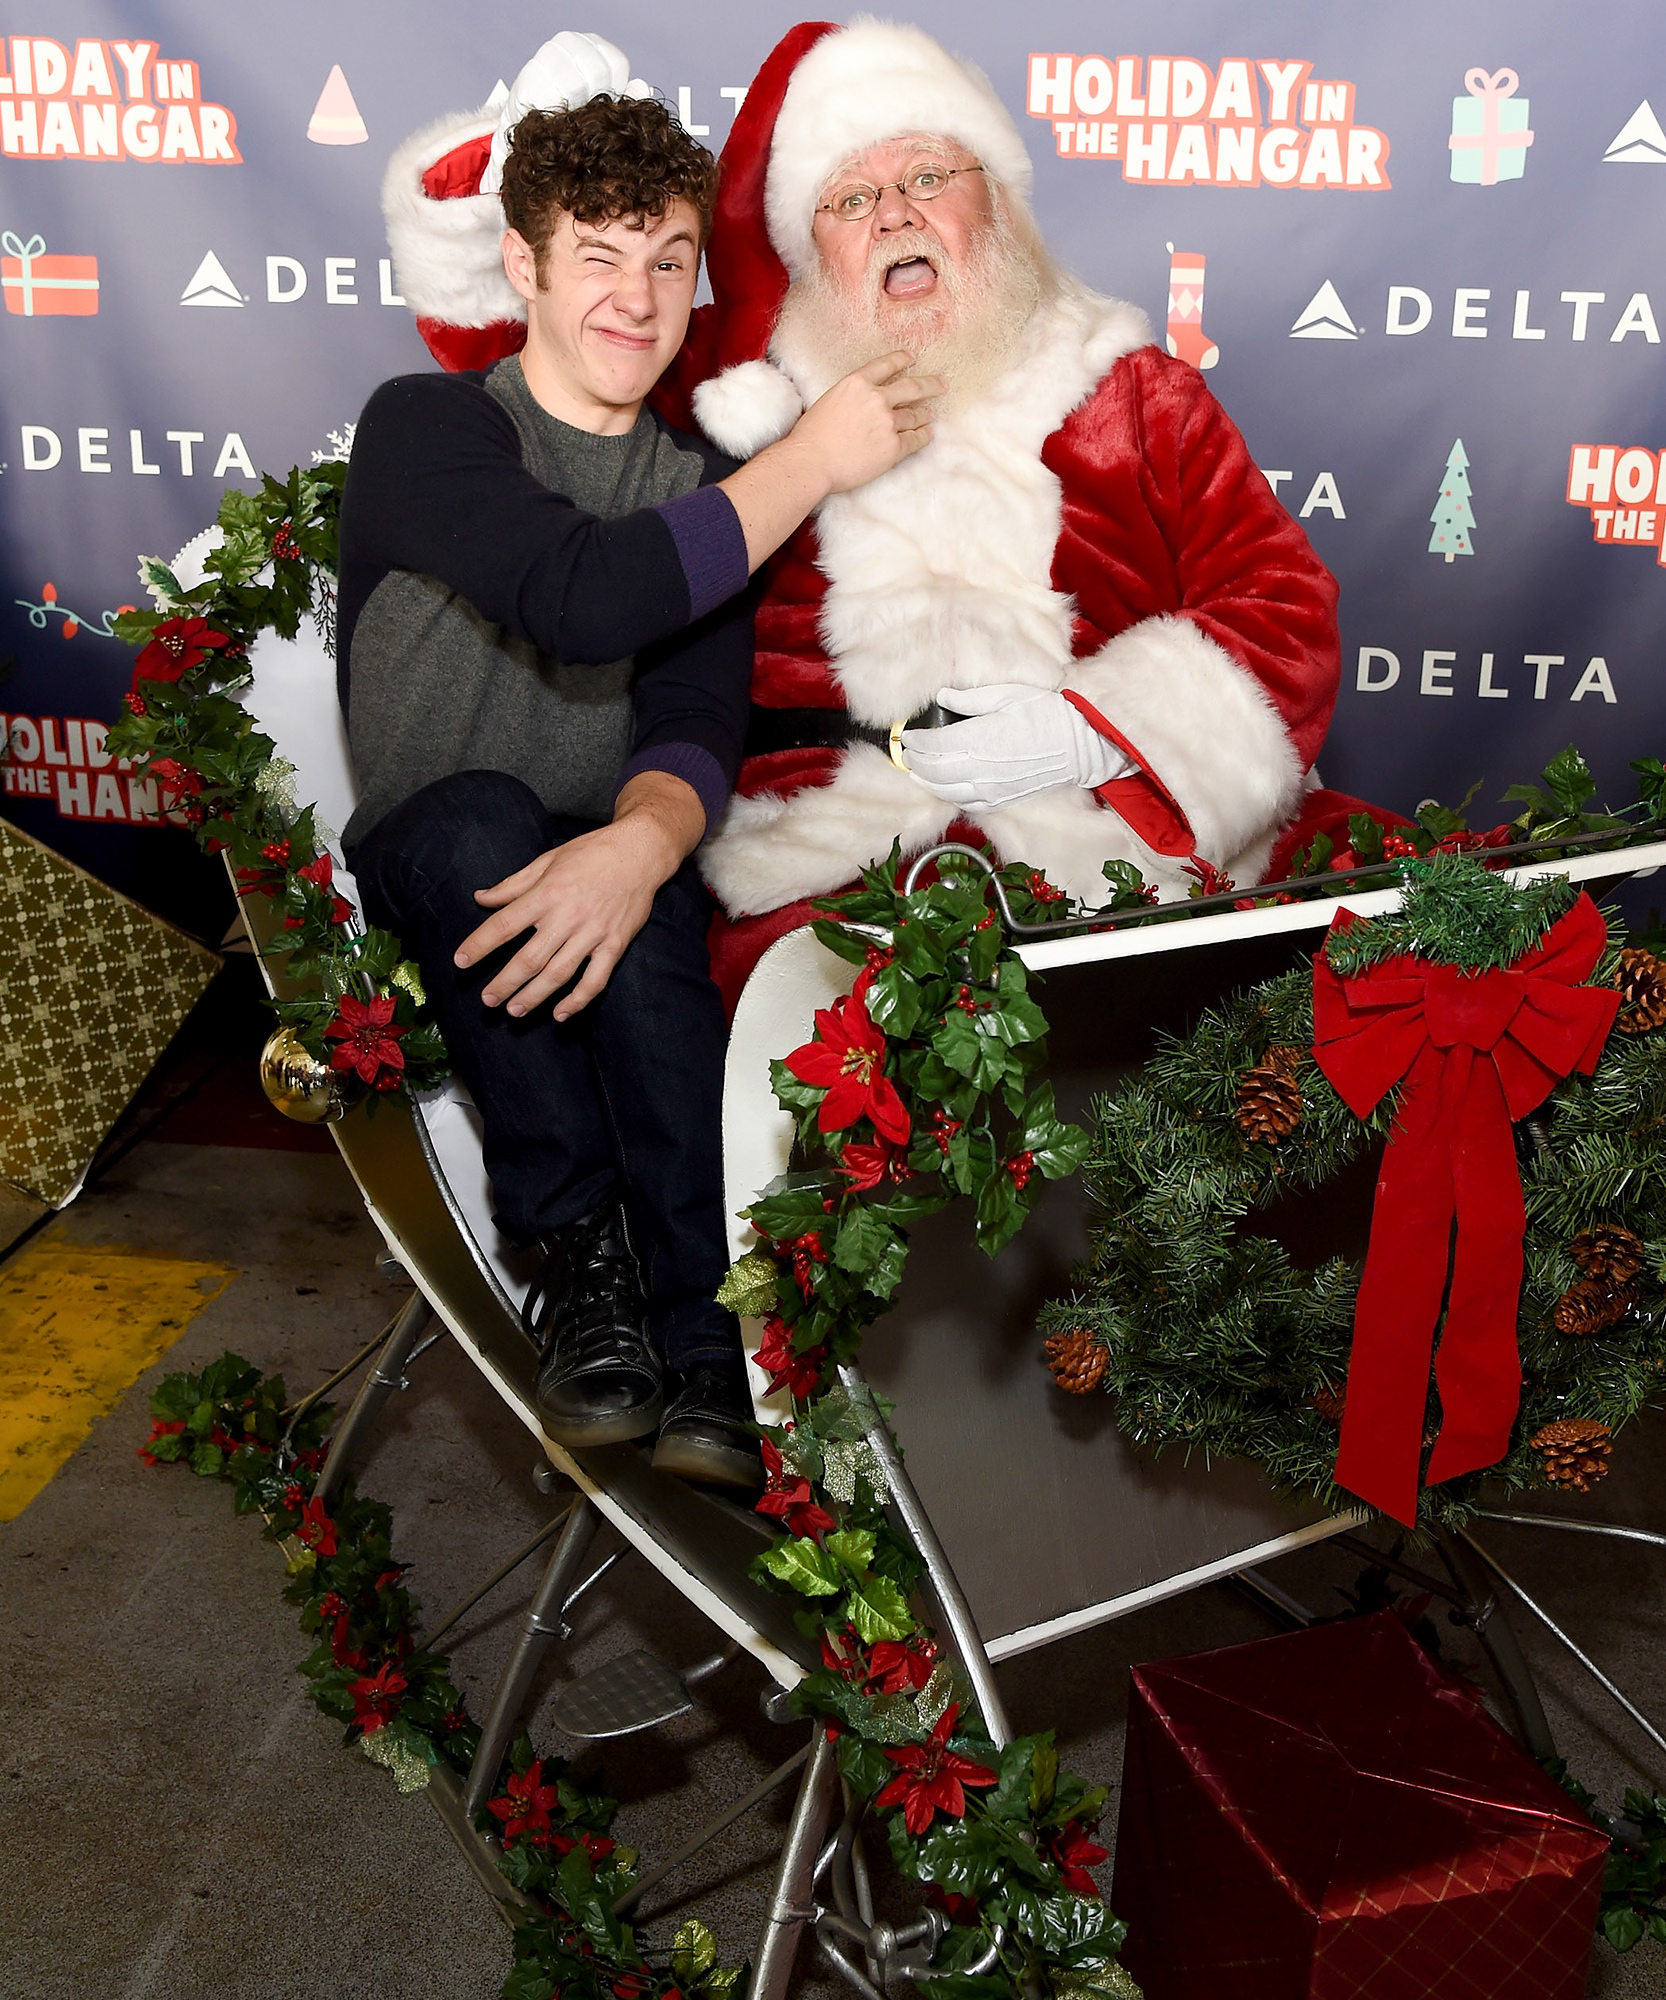 """Delta Air Lines Hosts Sixth Annual Holiday """"Flight"""" To The North Pole For 150 Kids From Children's Hospital Los Angeles And P.S. ARTS At LAX"""